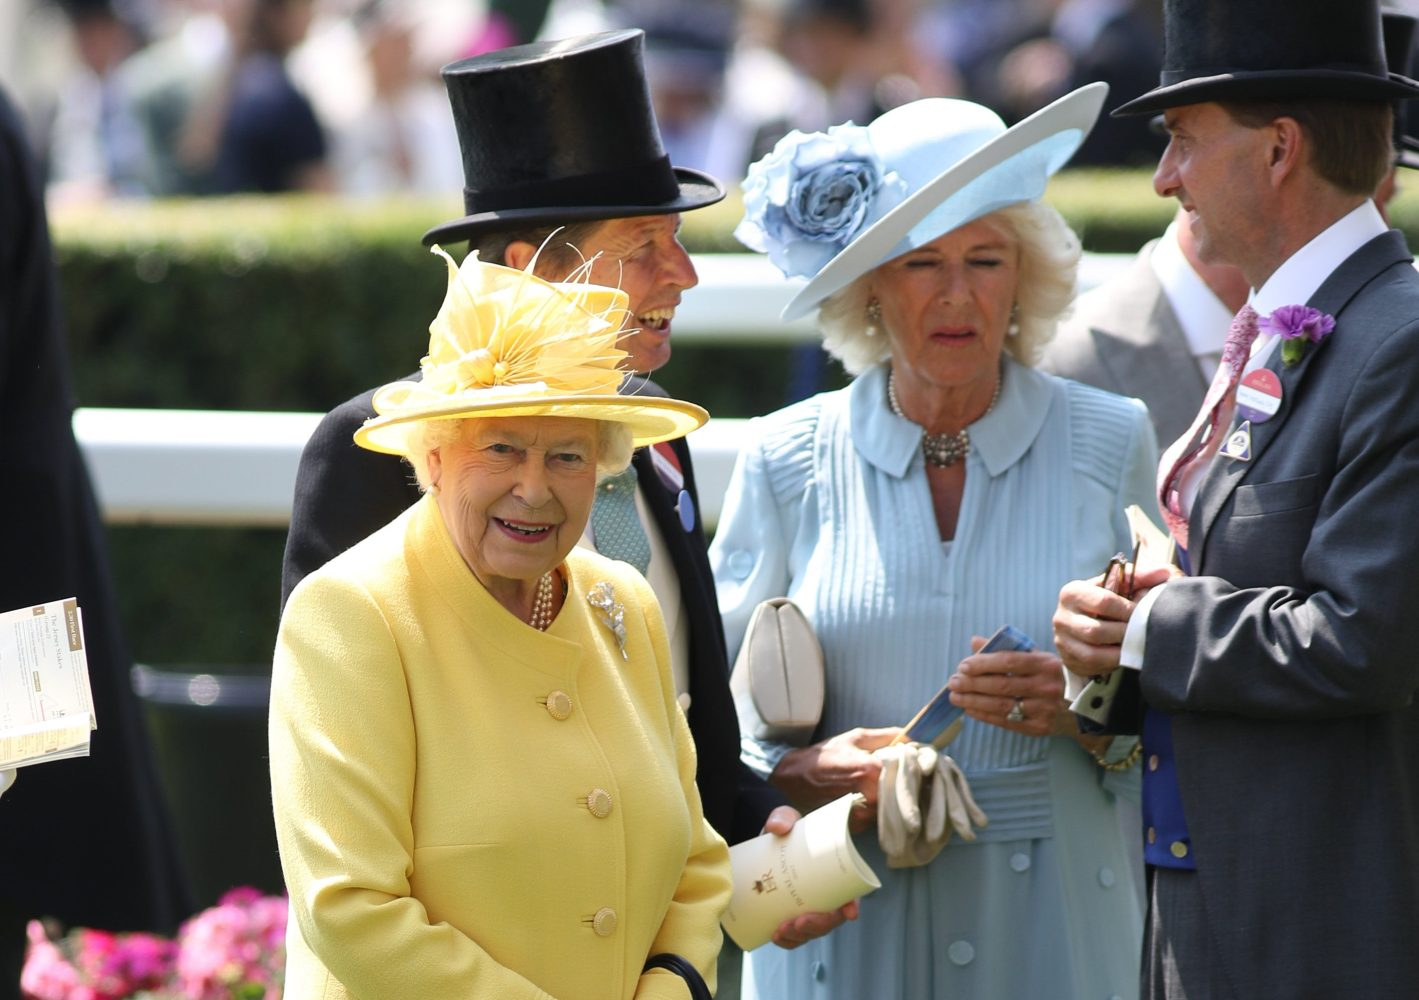 The Queen and Camilla enjoying day two of Royal Ascot (Picture by Stephen Lock / i-Images)